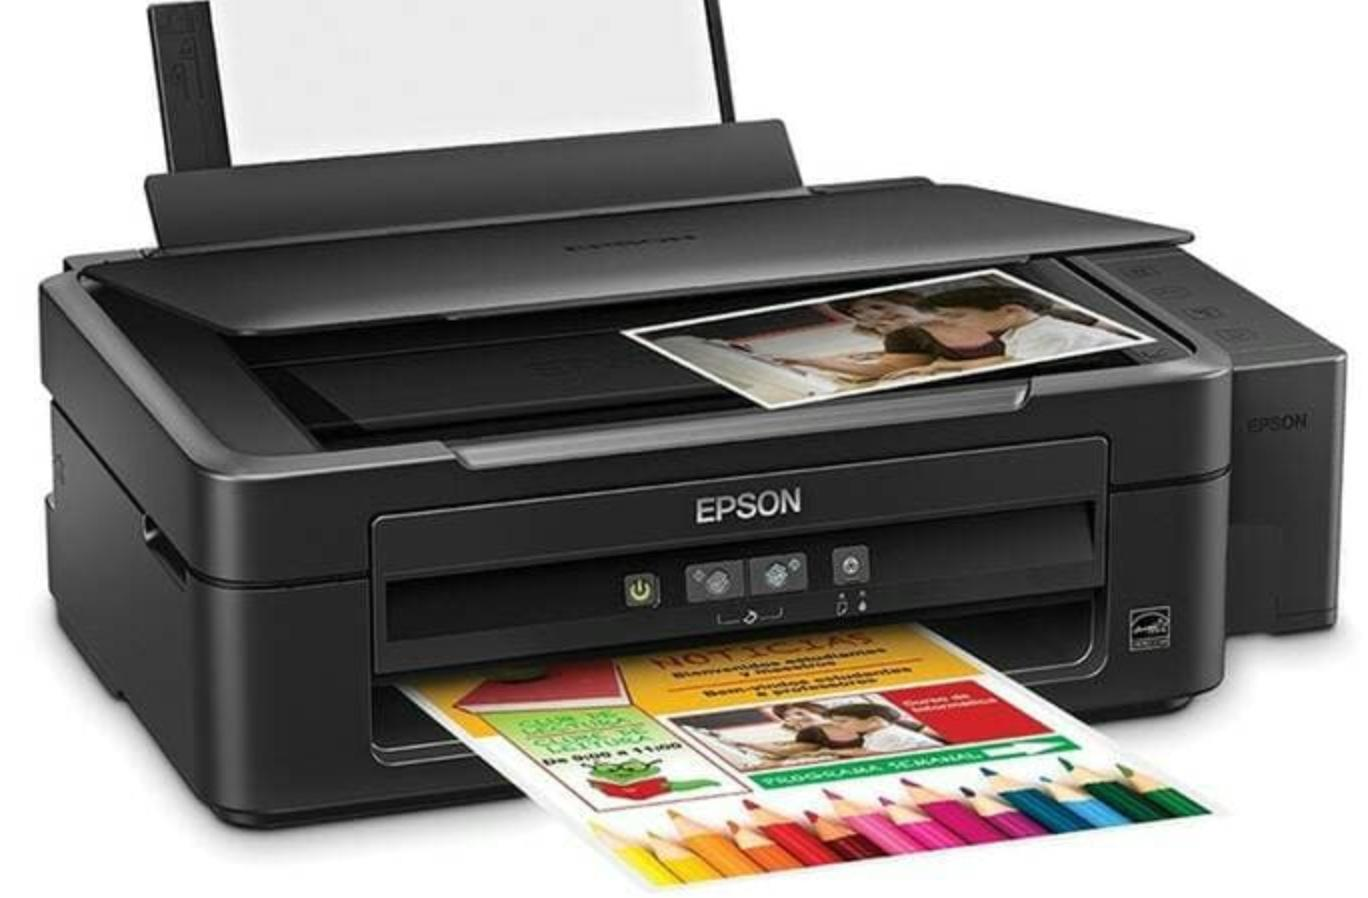 Cara Reset Printer Epson L220 Manual